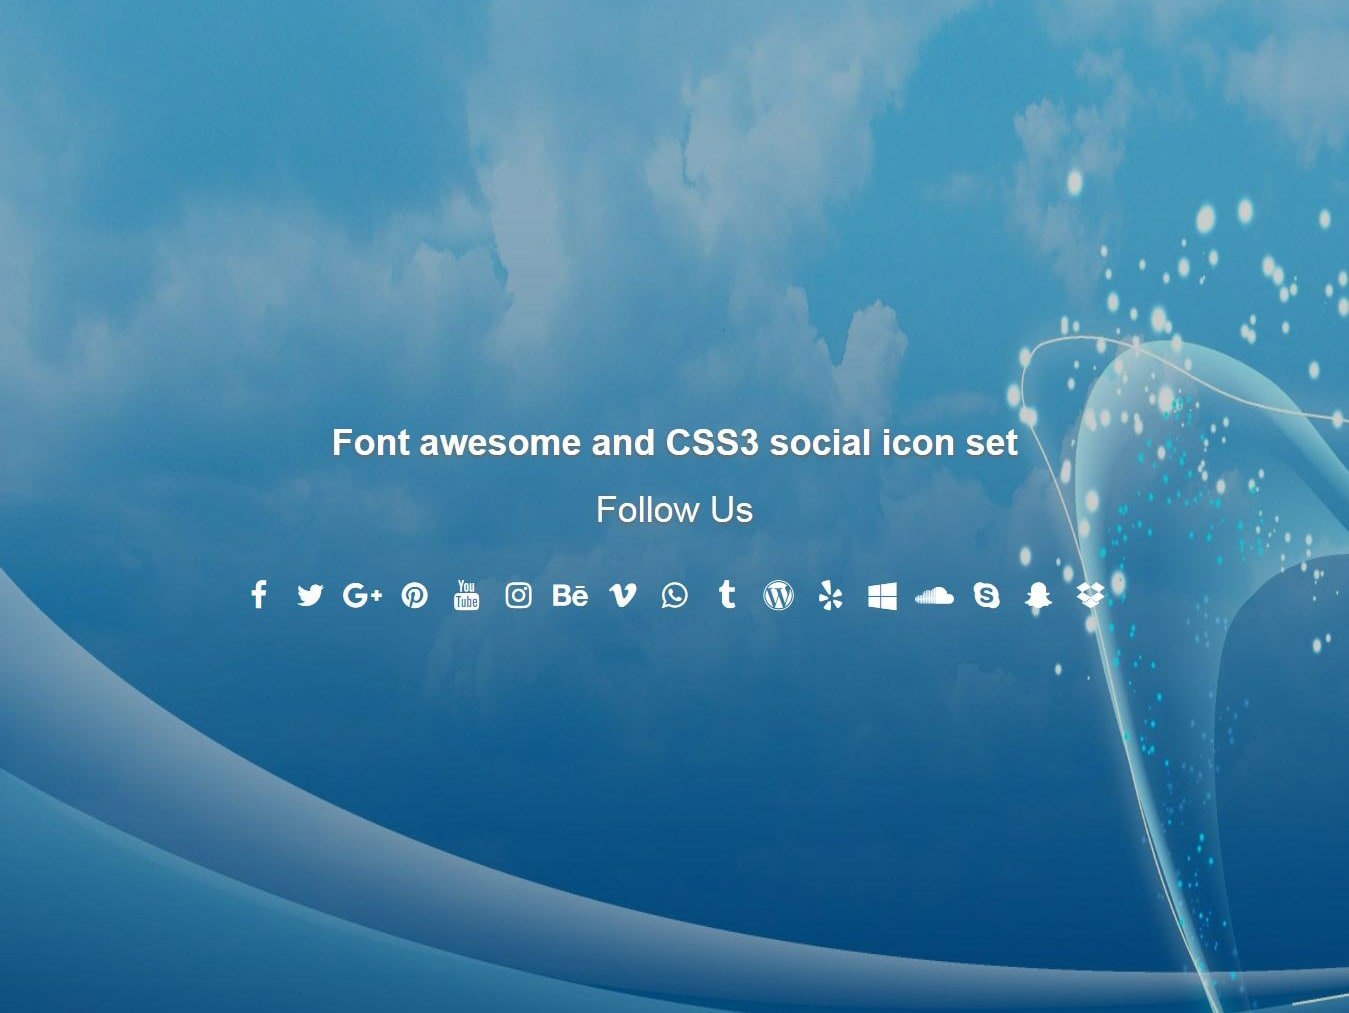 Font awesome and css3 social icon set